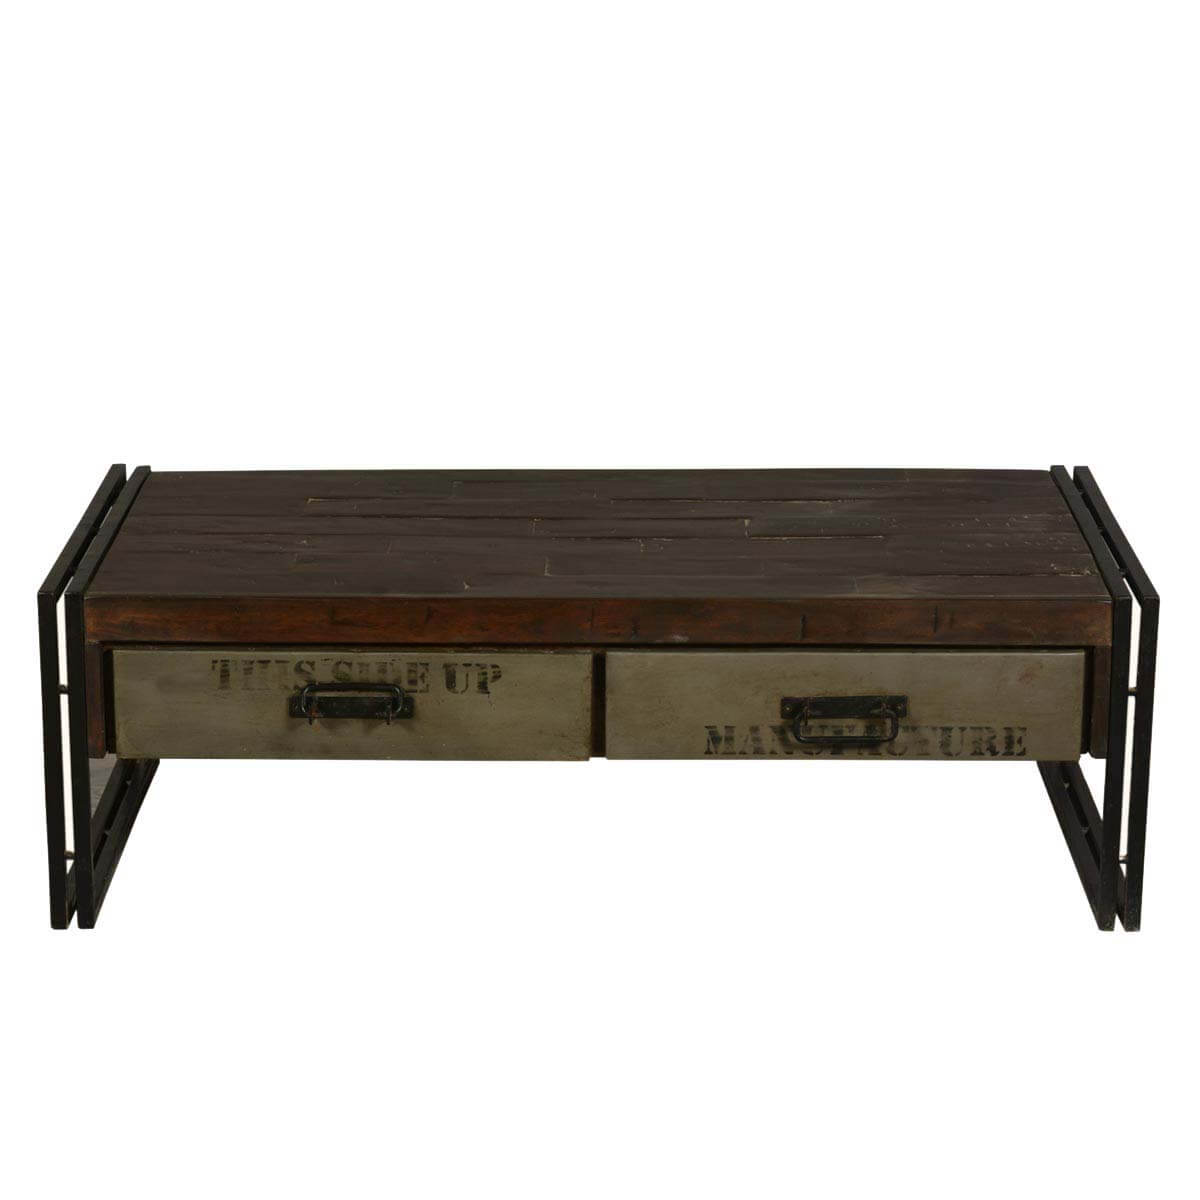 Reclaimed Wood And Metal Coffee Table: Philadelphia Modern Rustic Reclaimed Wood & Metal Coffee Table